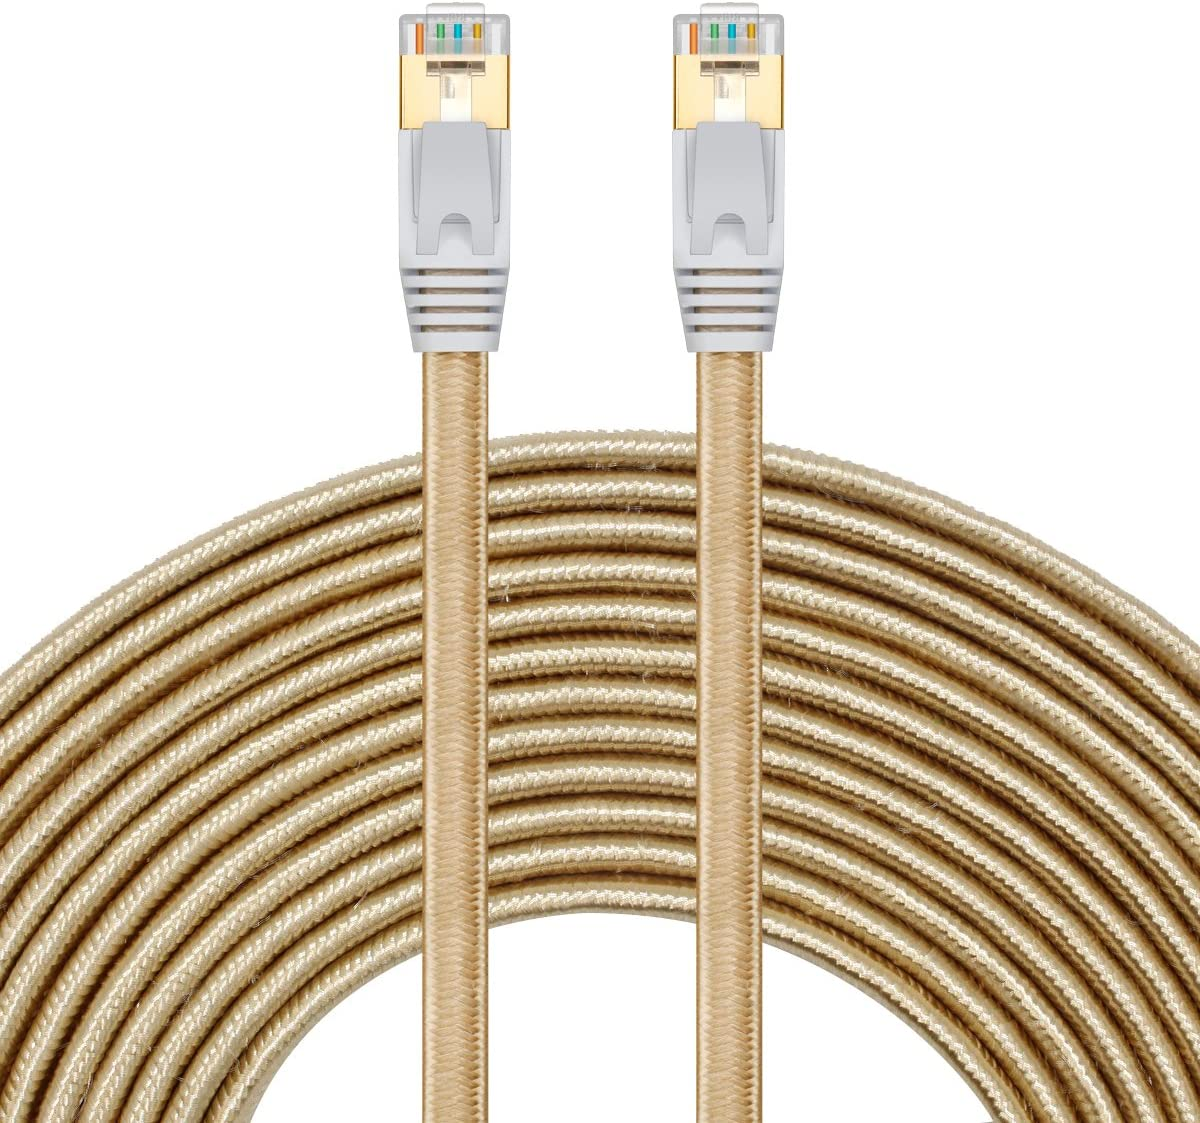 Cat 7 Ethernet Cable 6 ft - SNANSHI Nylon Braided Cat7 Flat Internet Network Lan Patch Cable SSTP Shielded Gold Plated Ethernet Network Patch Cable for Modem, Router, Printer, Computer, PS4, Xobx Gold